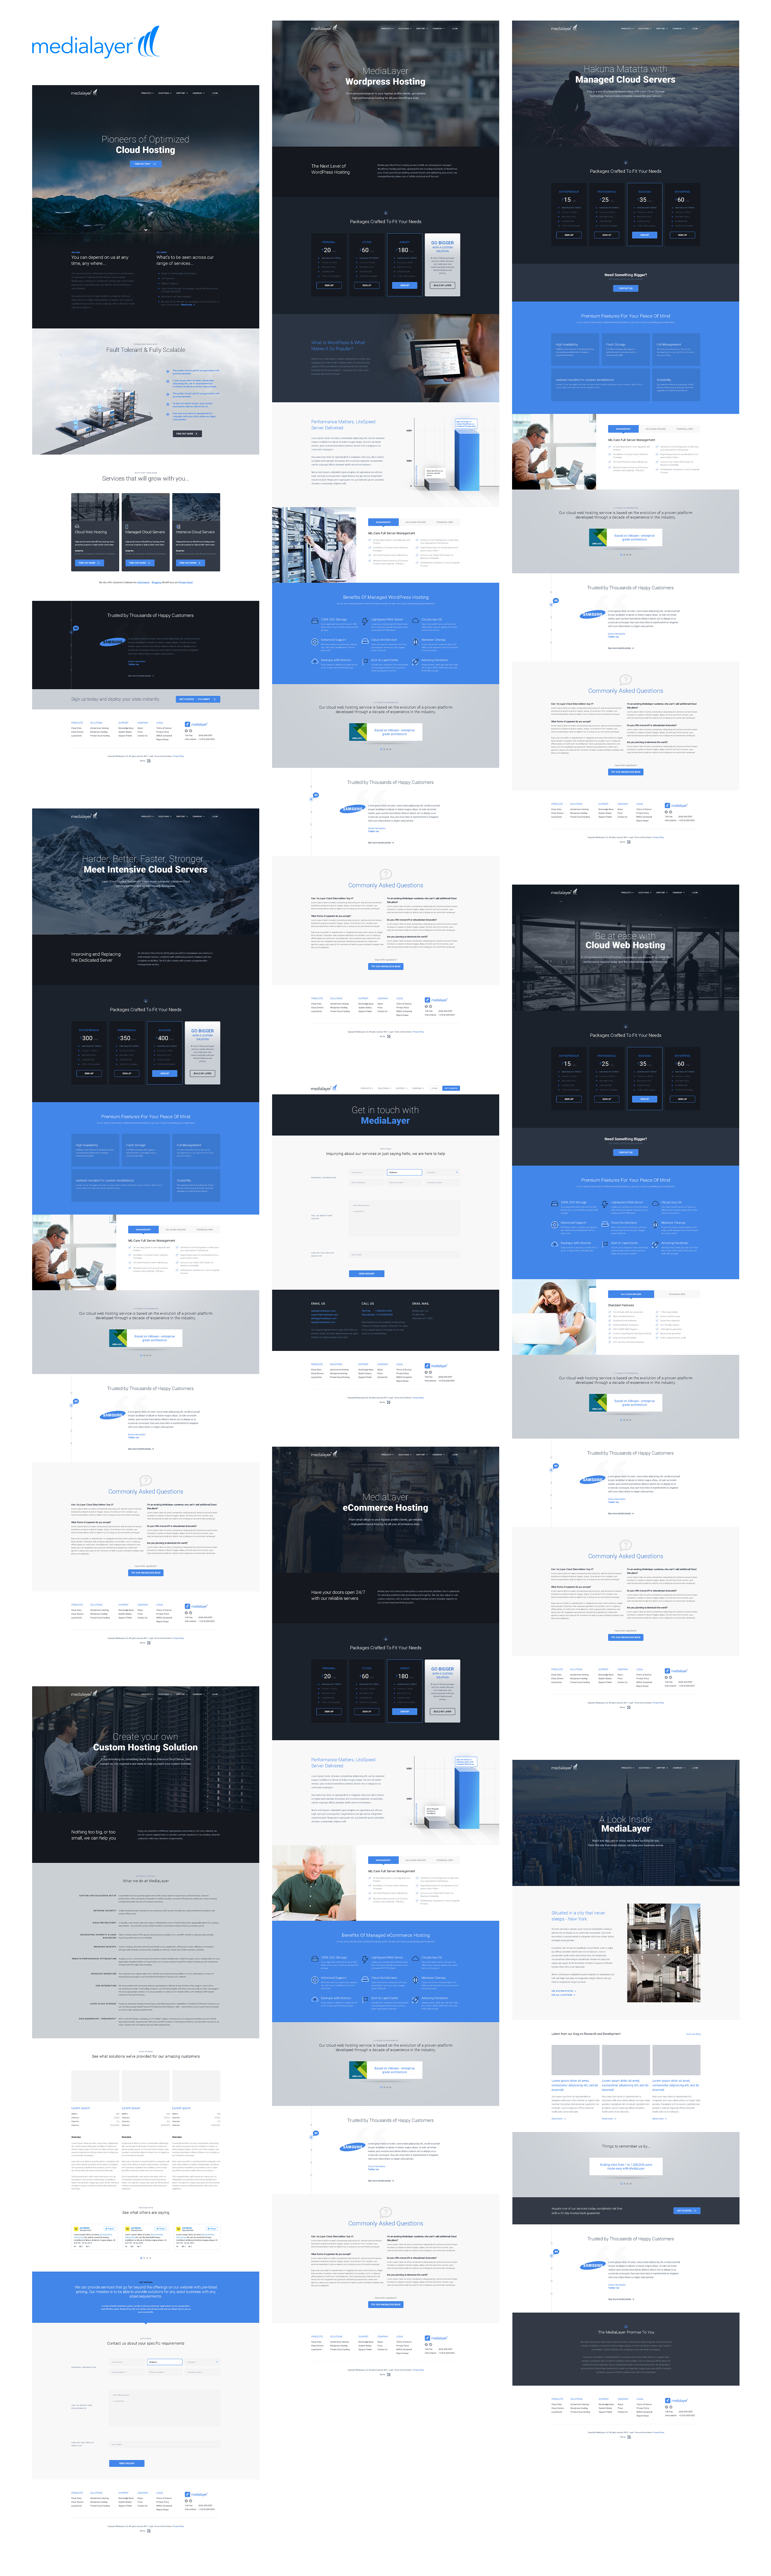 Most pages that I designed for MediaLayer